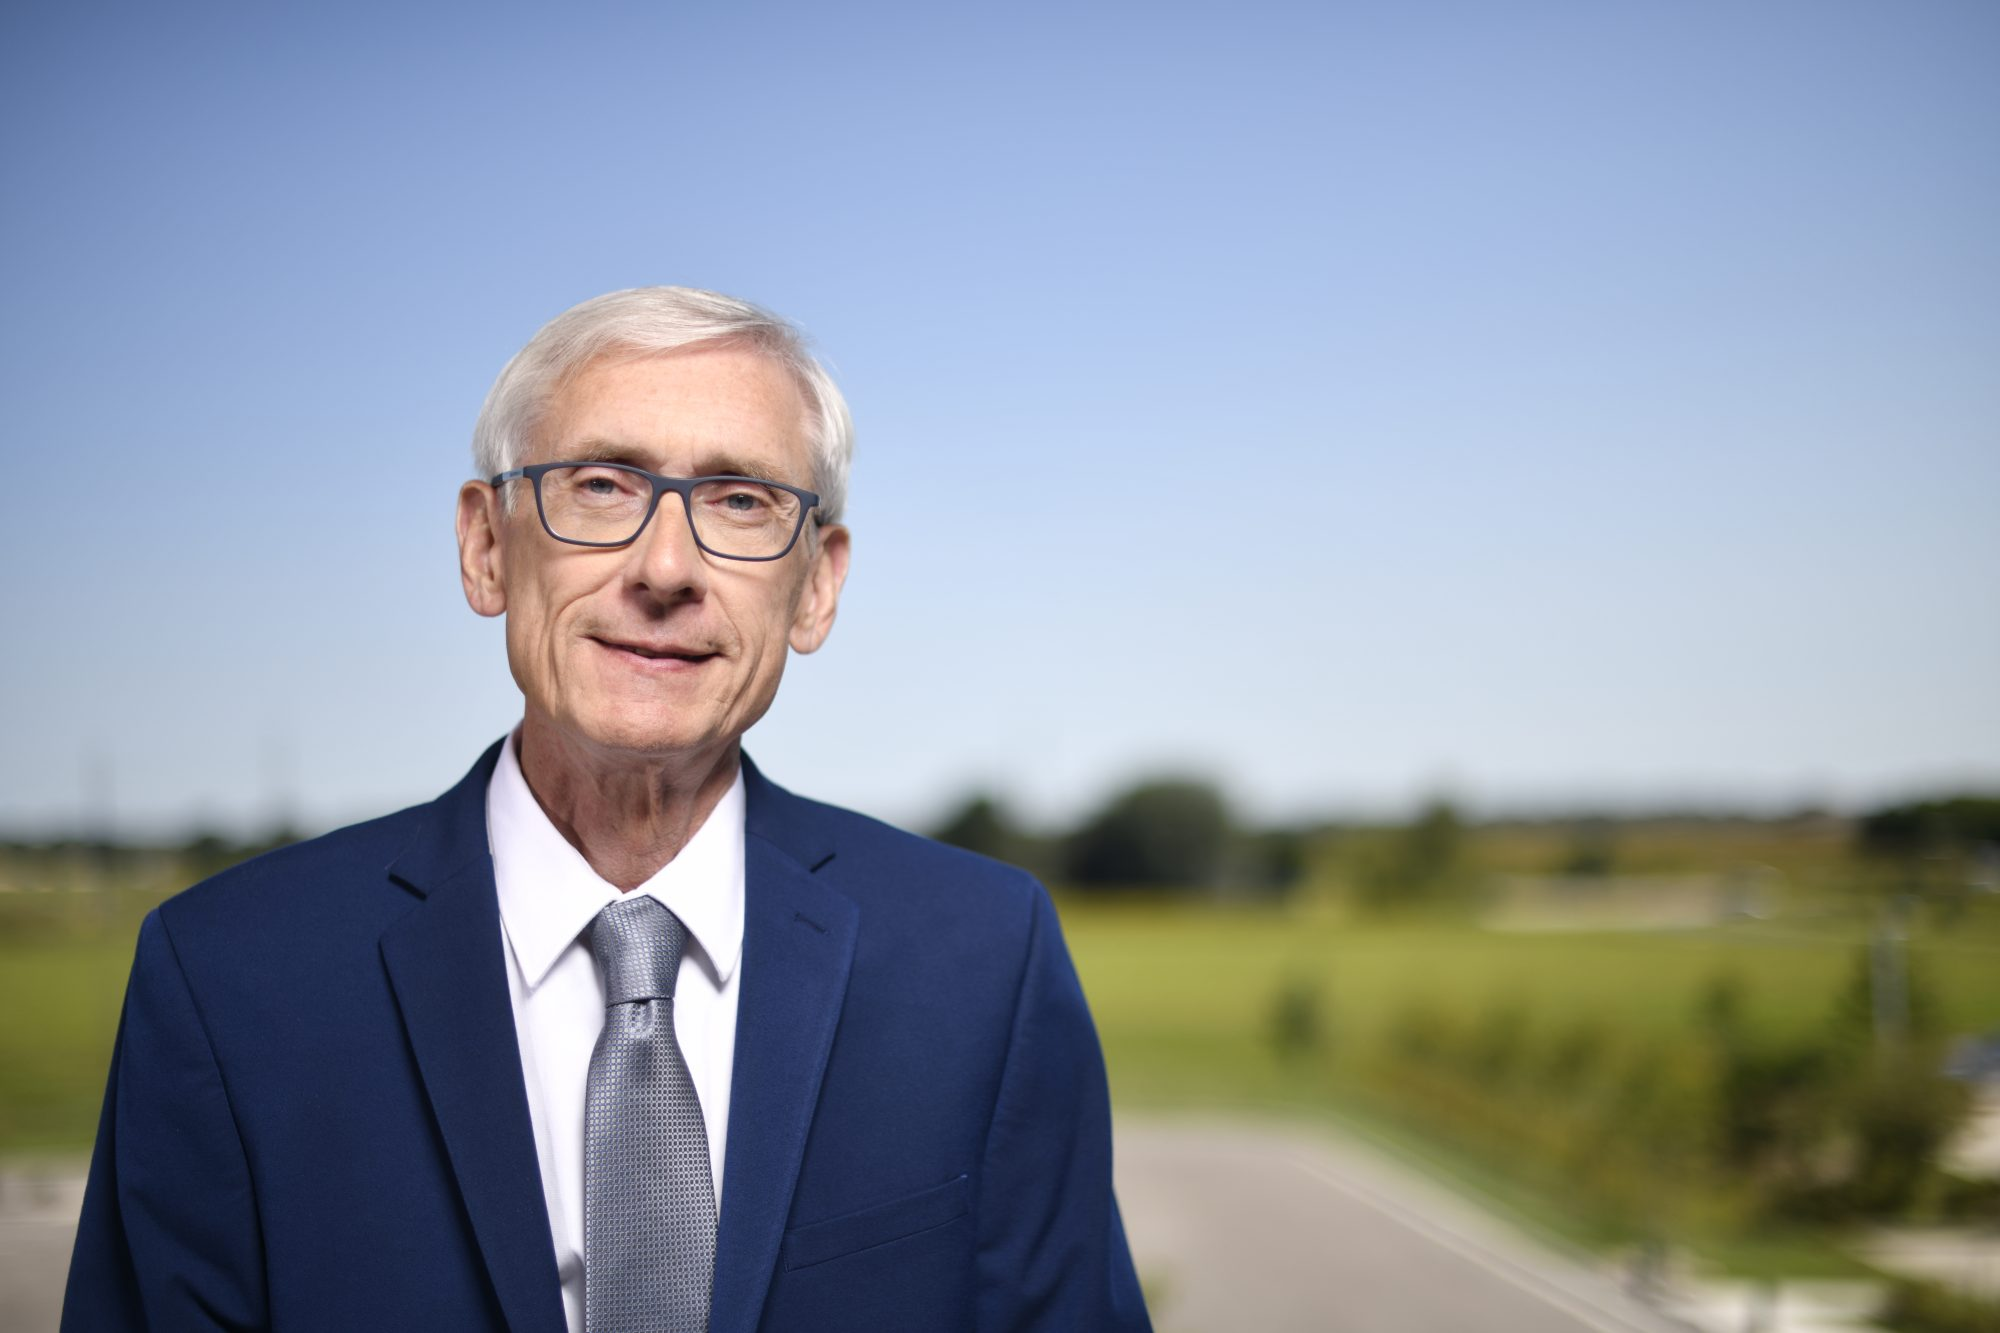 Gov. Evers Announces $1 Million TEA Grant for Fitchburg, Supporting Promega Expansion and Creating 200 New Jobs